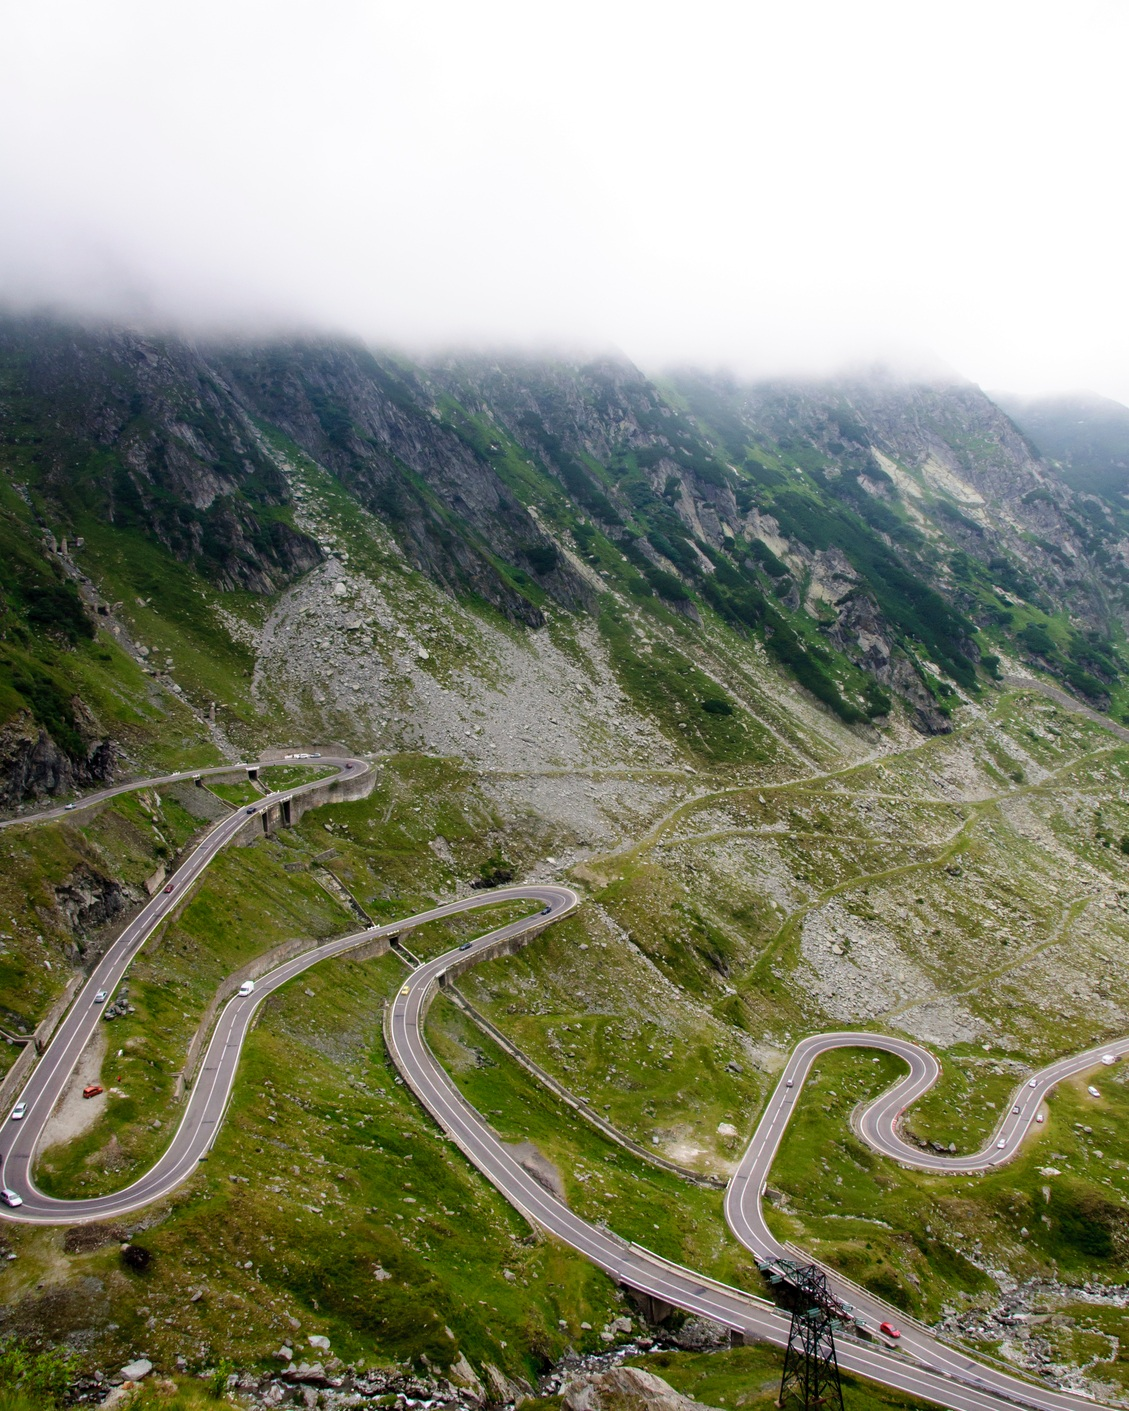 Cycling the Transfagarasan Highway. Copyright Martin Cycling Adventures.